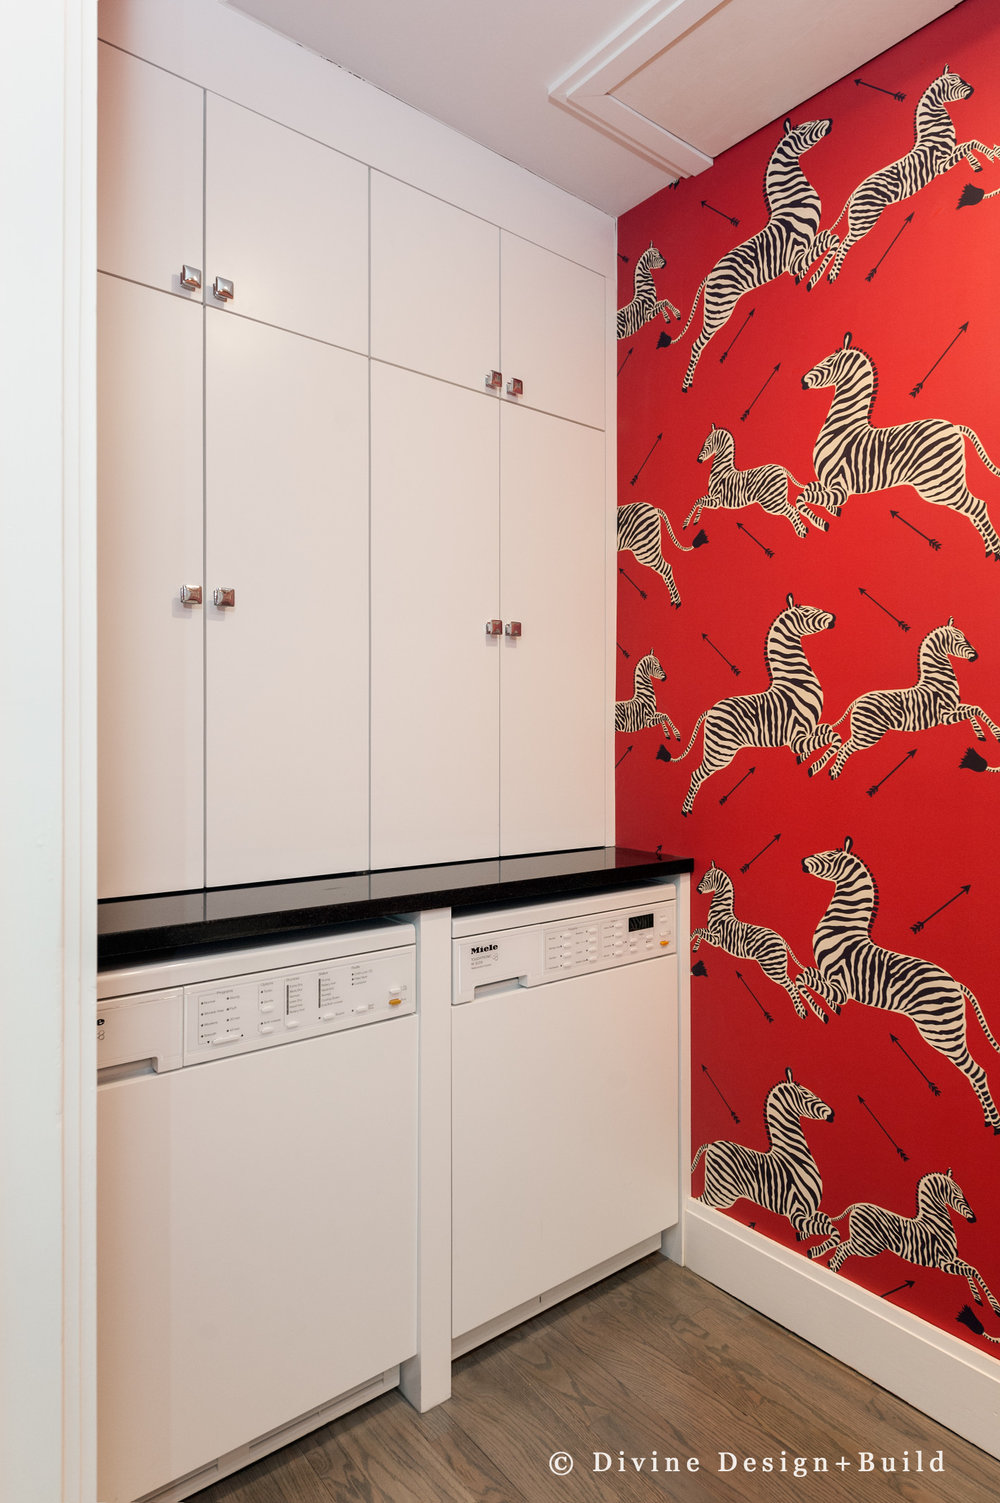 Modern laundry room with red wallpaper and zebras.